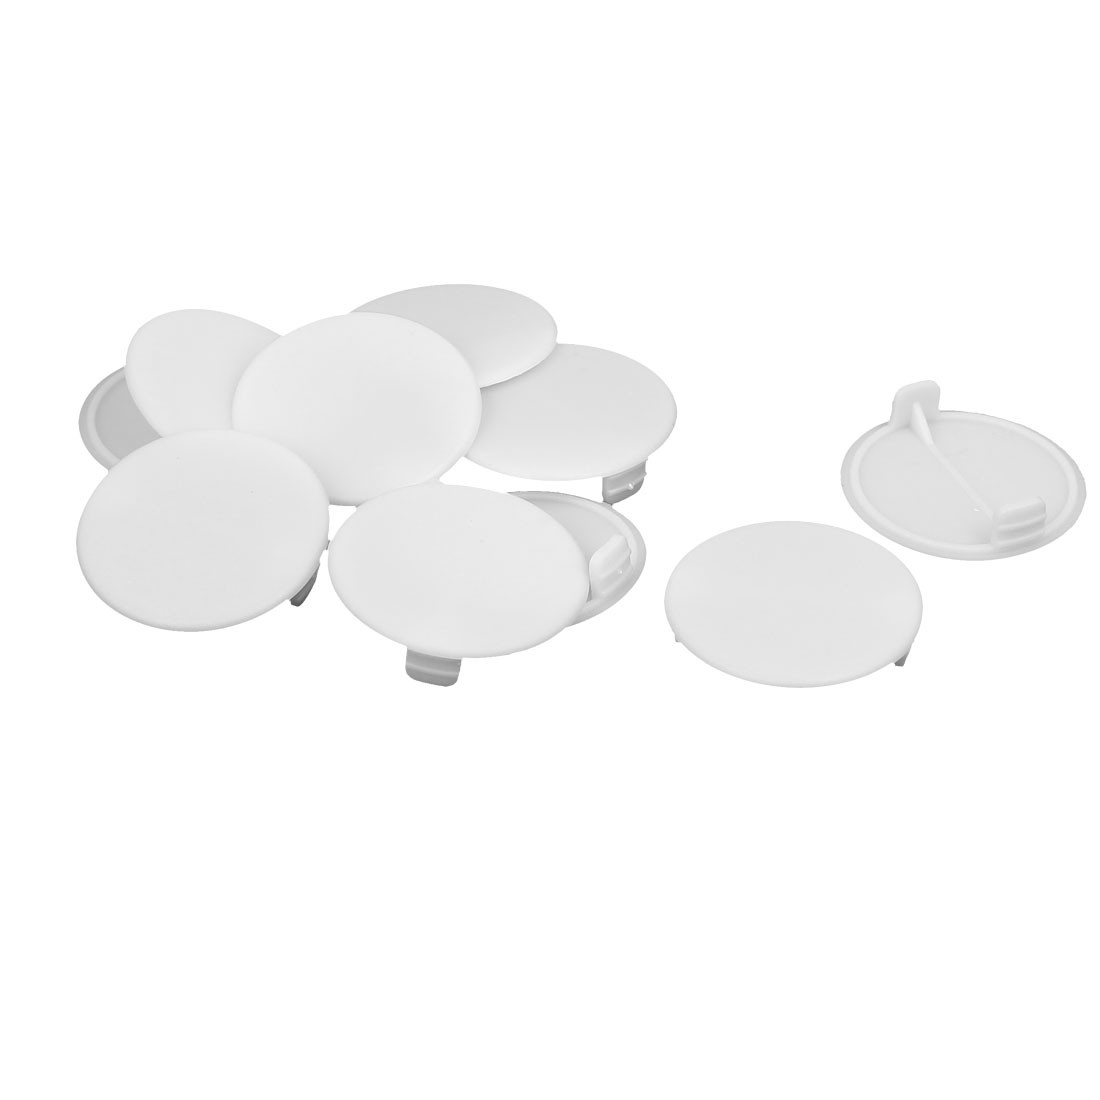 Home Plastic Round Flush Mount Hole Stoppers Covers White 38mm Dia 10pcs